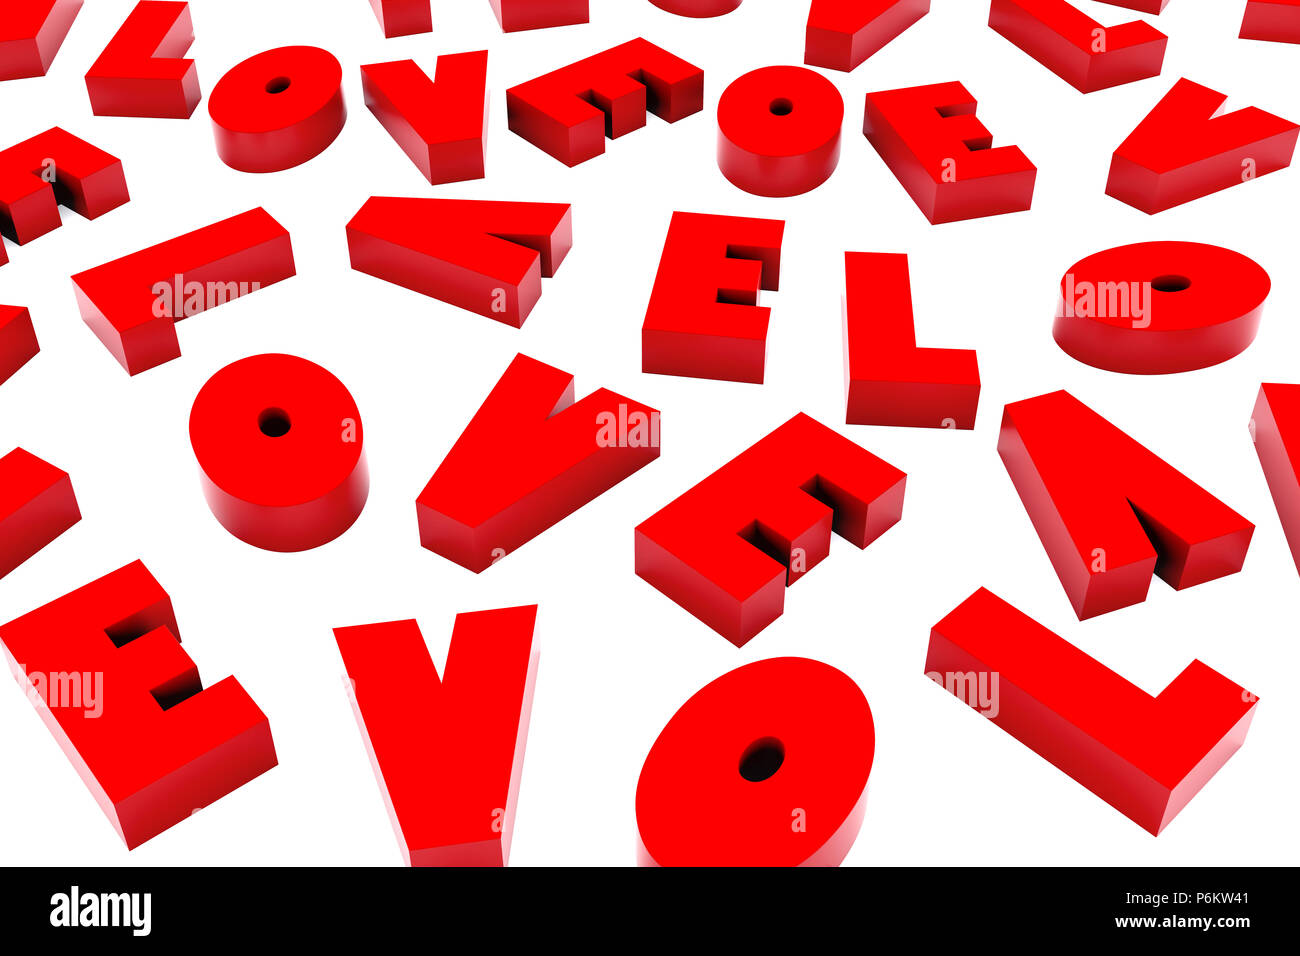 3d backdrop made of red computer rendered letters L O V E scrambled and replicated isolated - Stock Image